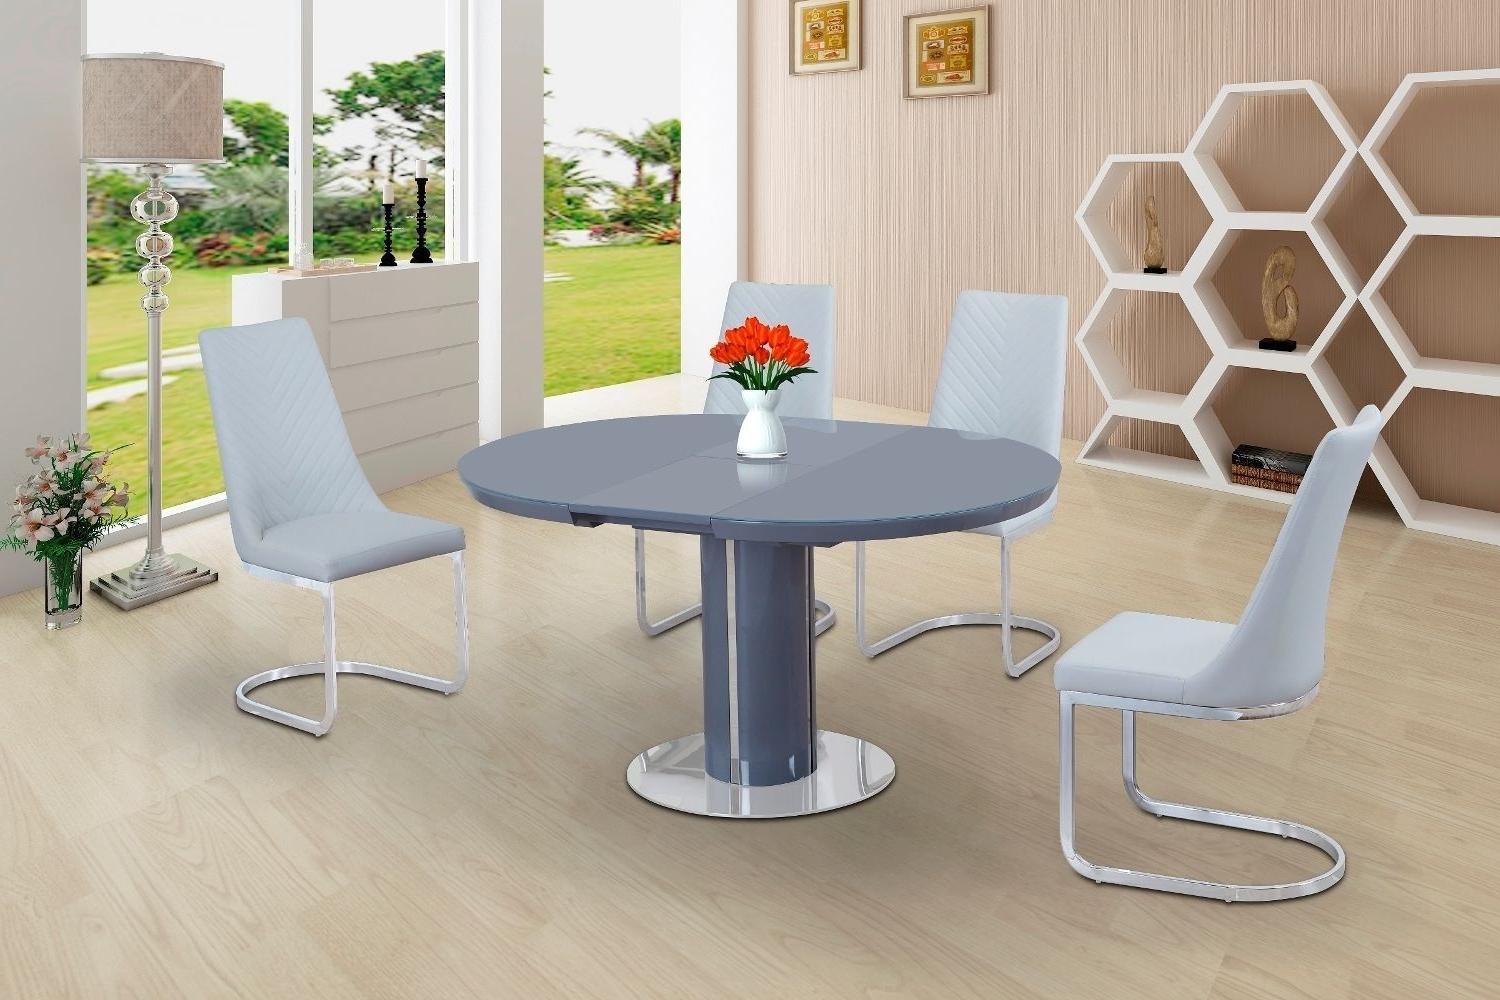 Extendable Round Dining Tables Sets In Fashionable Eclipse Round Oval Gloss & Glass Extending 110 To 145 Cm Dining (View 7 of 25)